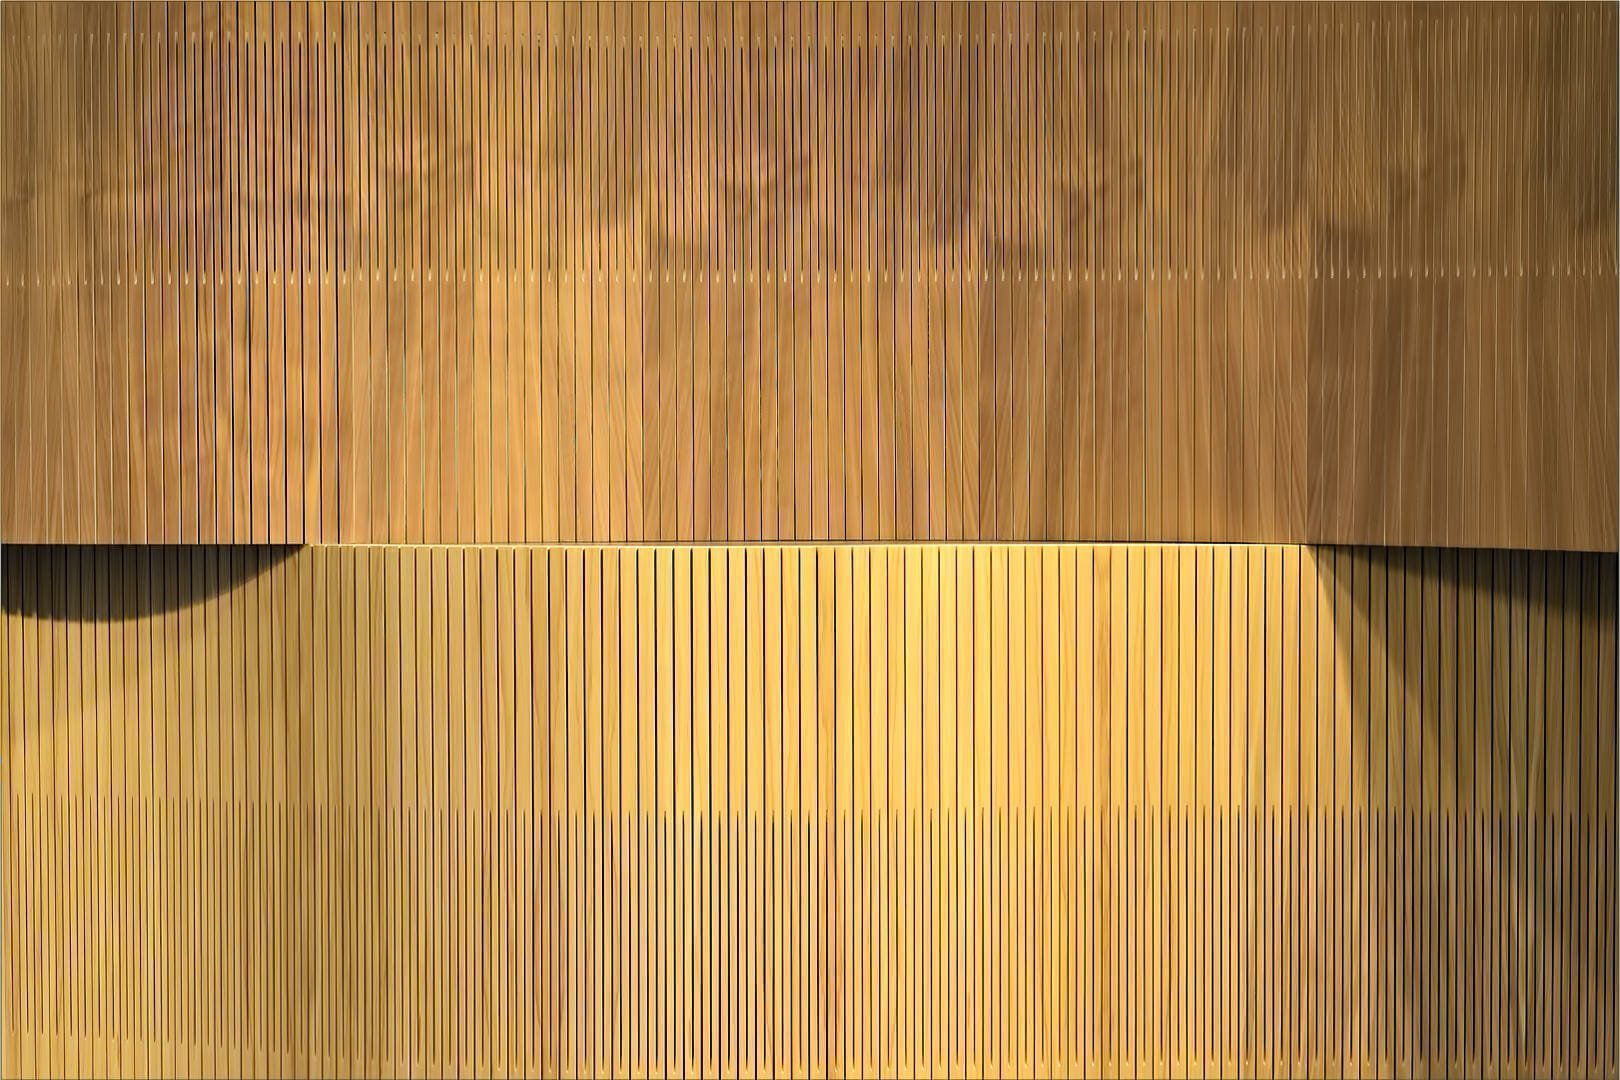 acoustic wood undulating like wave in detail